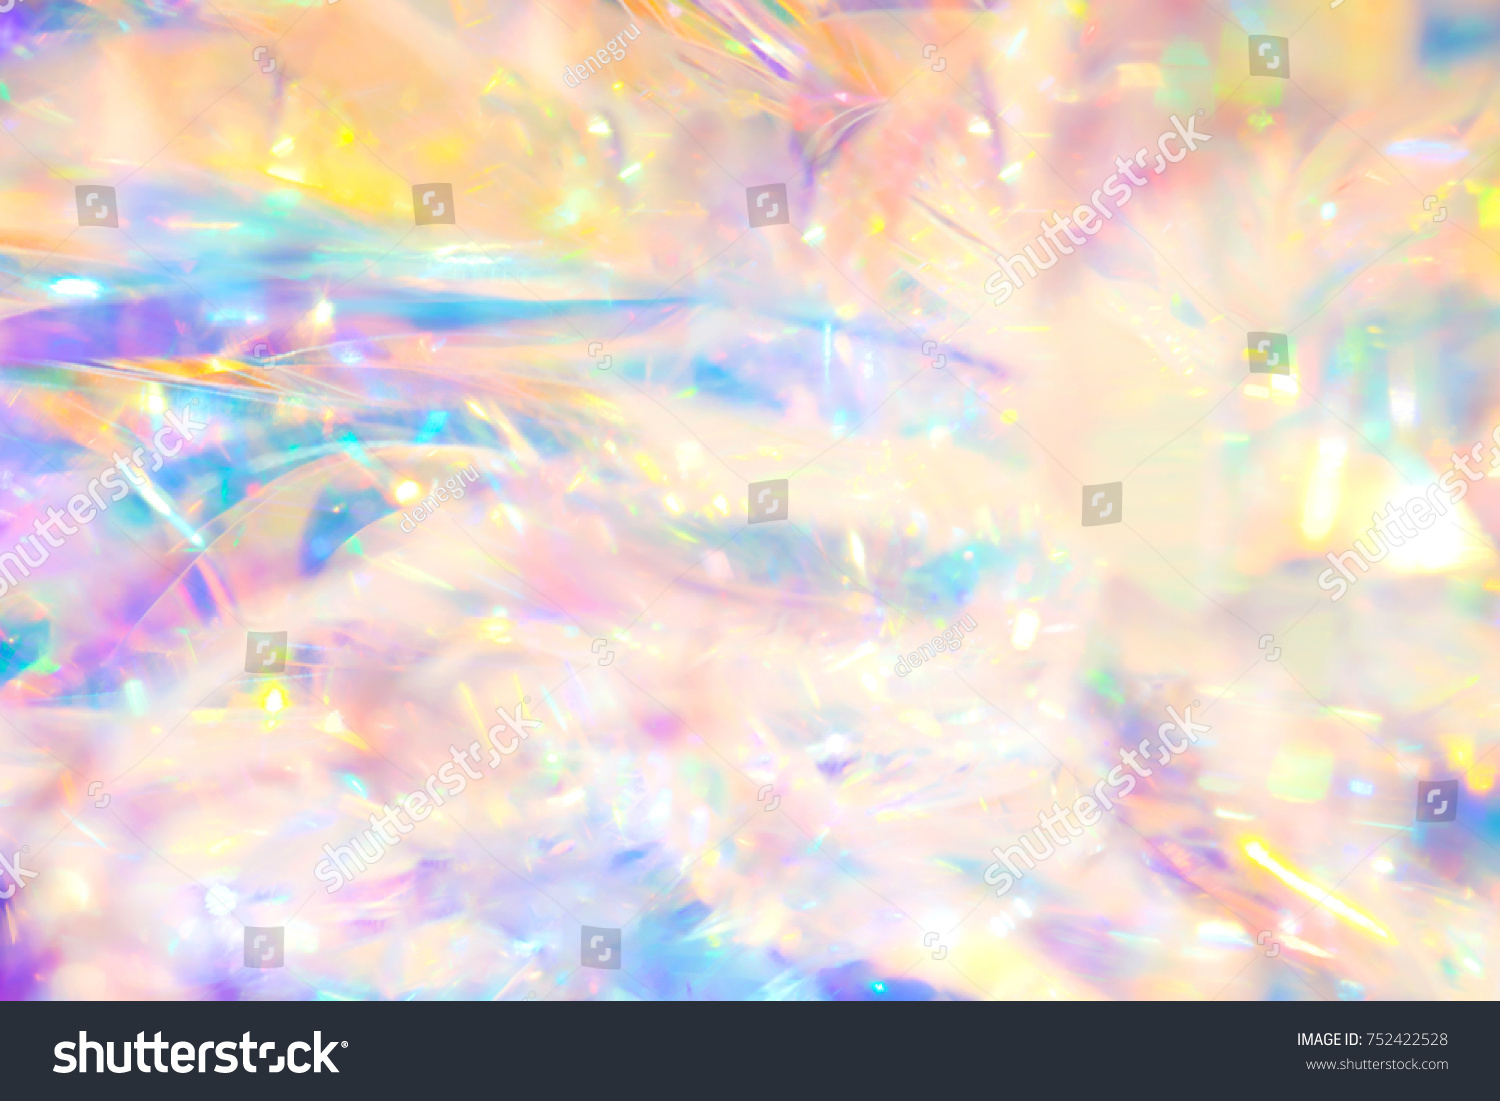 Iridescent Wallpaper Abstract Magical Pastel Colored Wallpaper Background Stock Photo